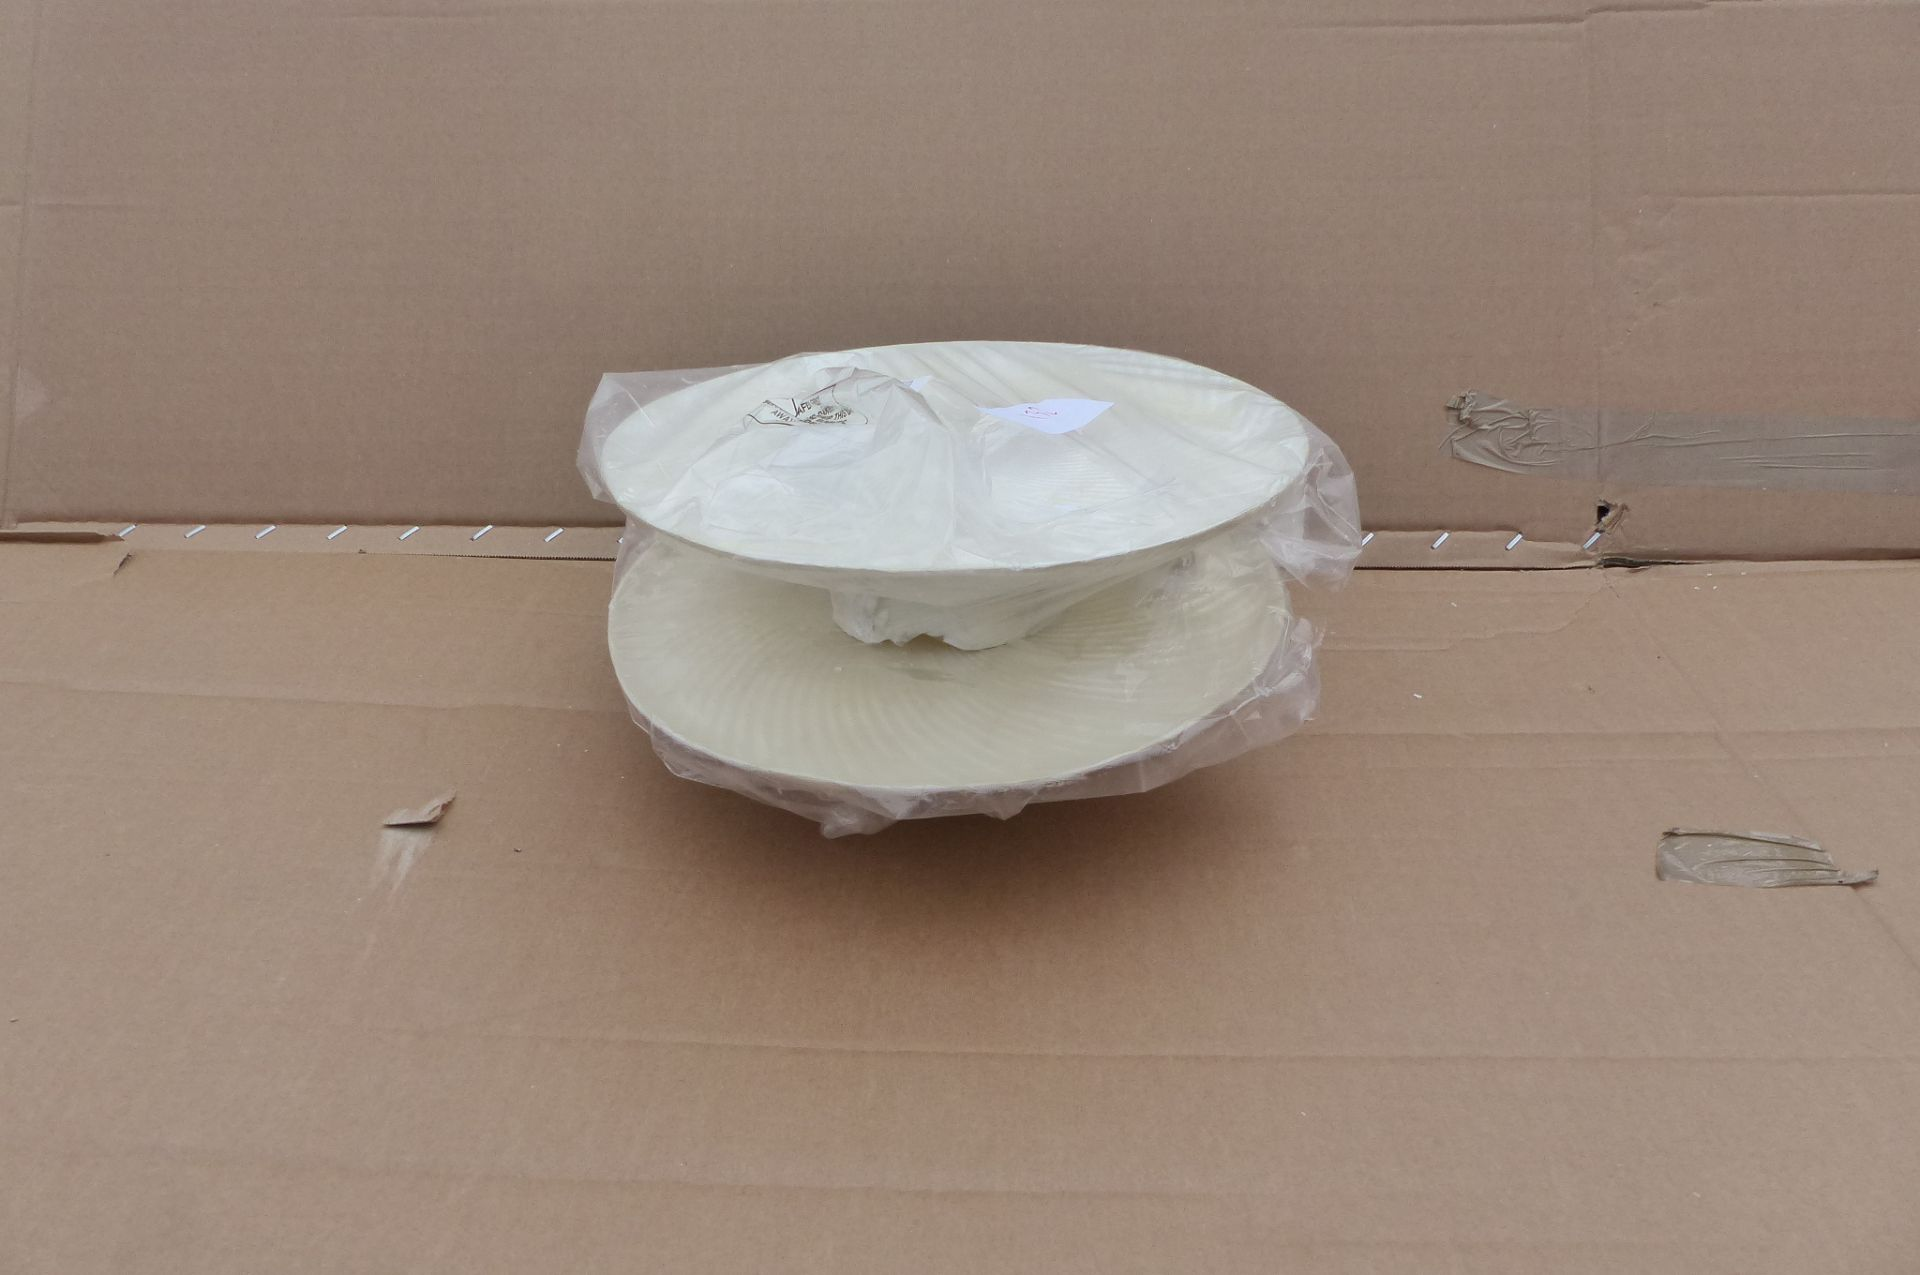 2 Anthropologie Cake Stands